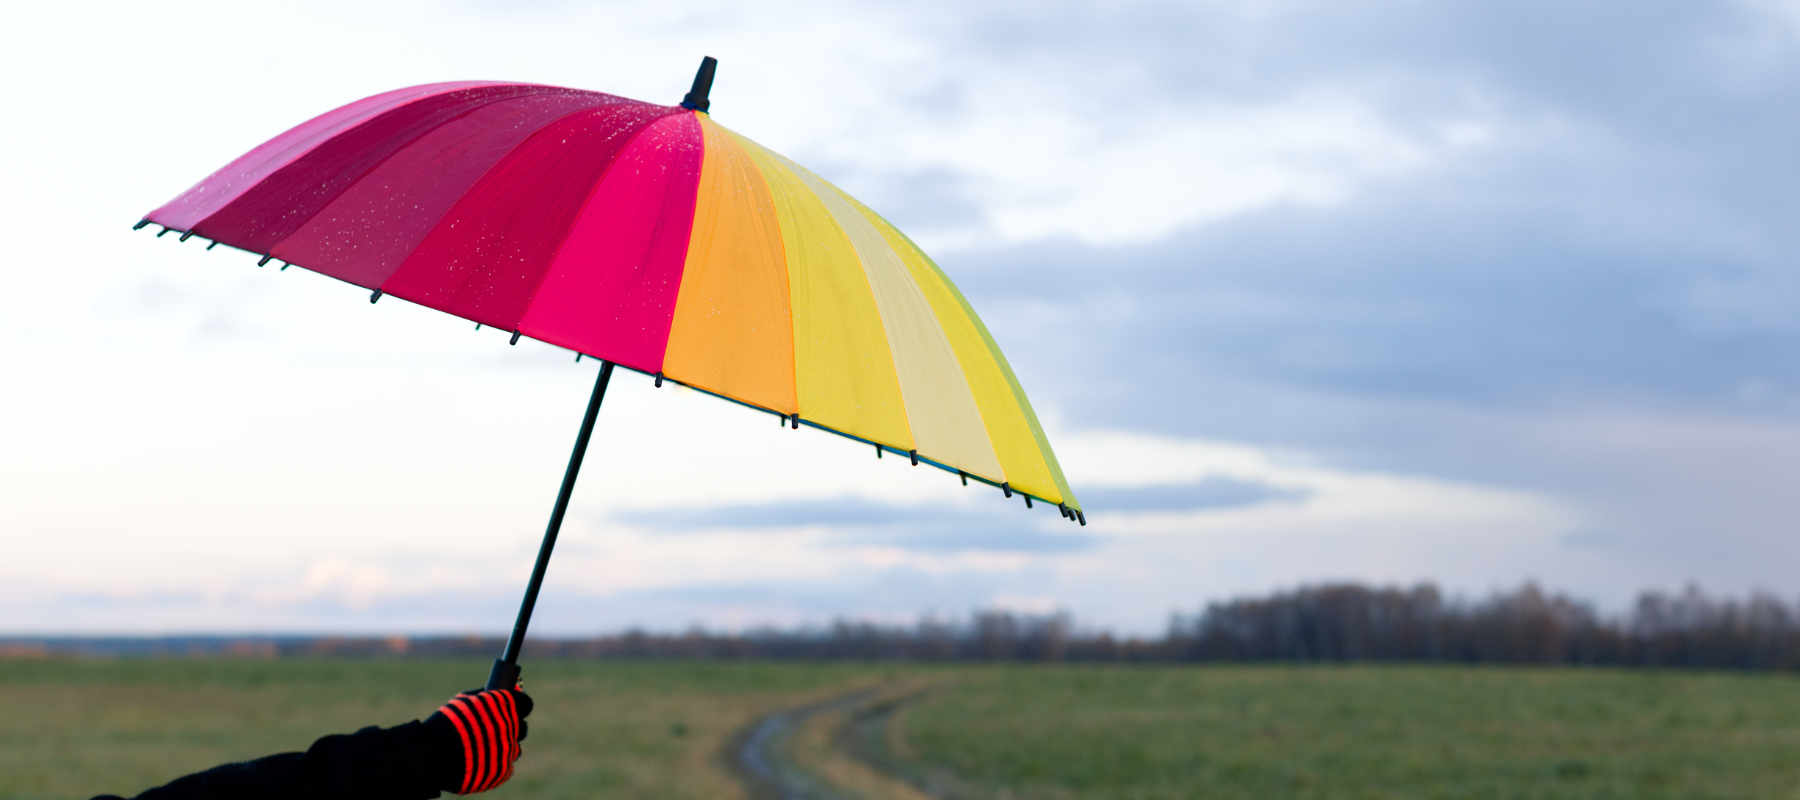 Image of colourful umbrella as concept for wise living over 50s online security guides - from avoiding identity theft to social media safety